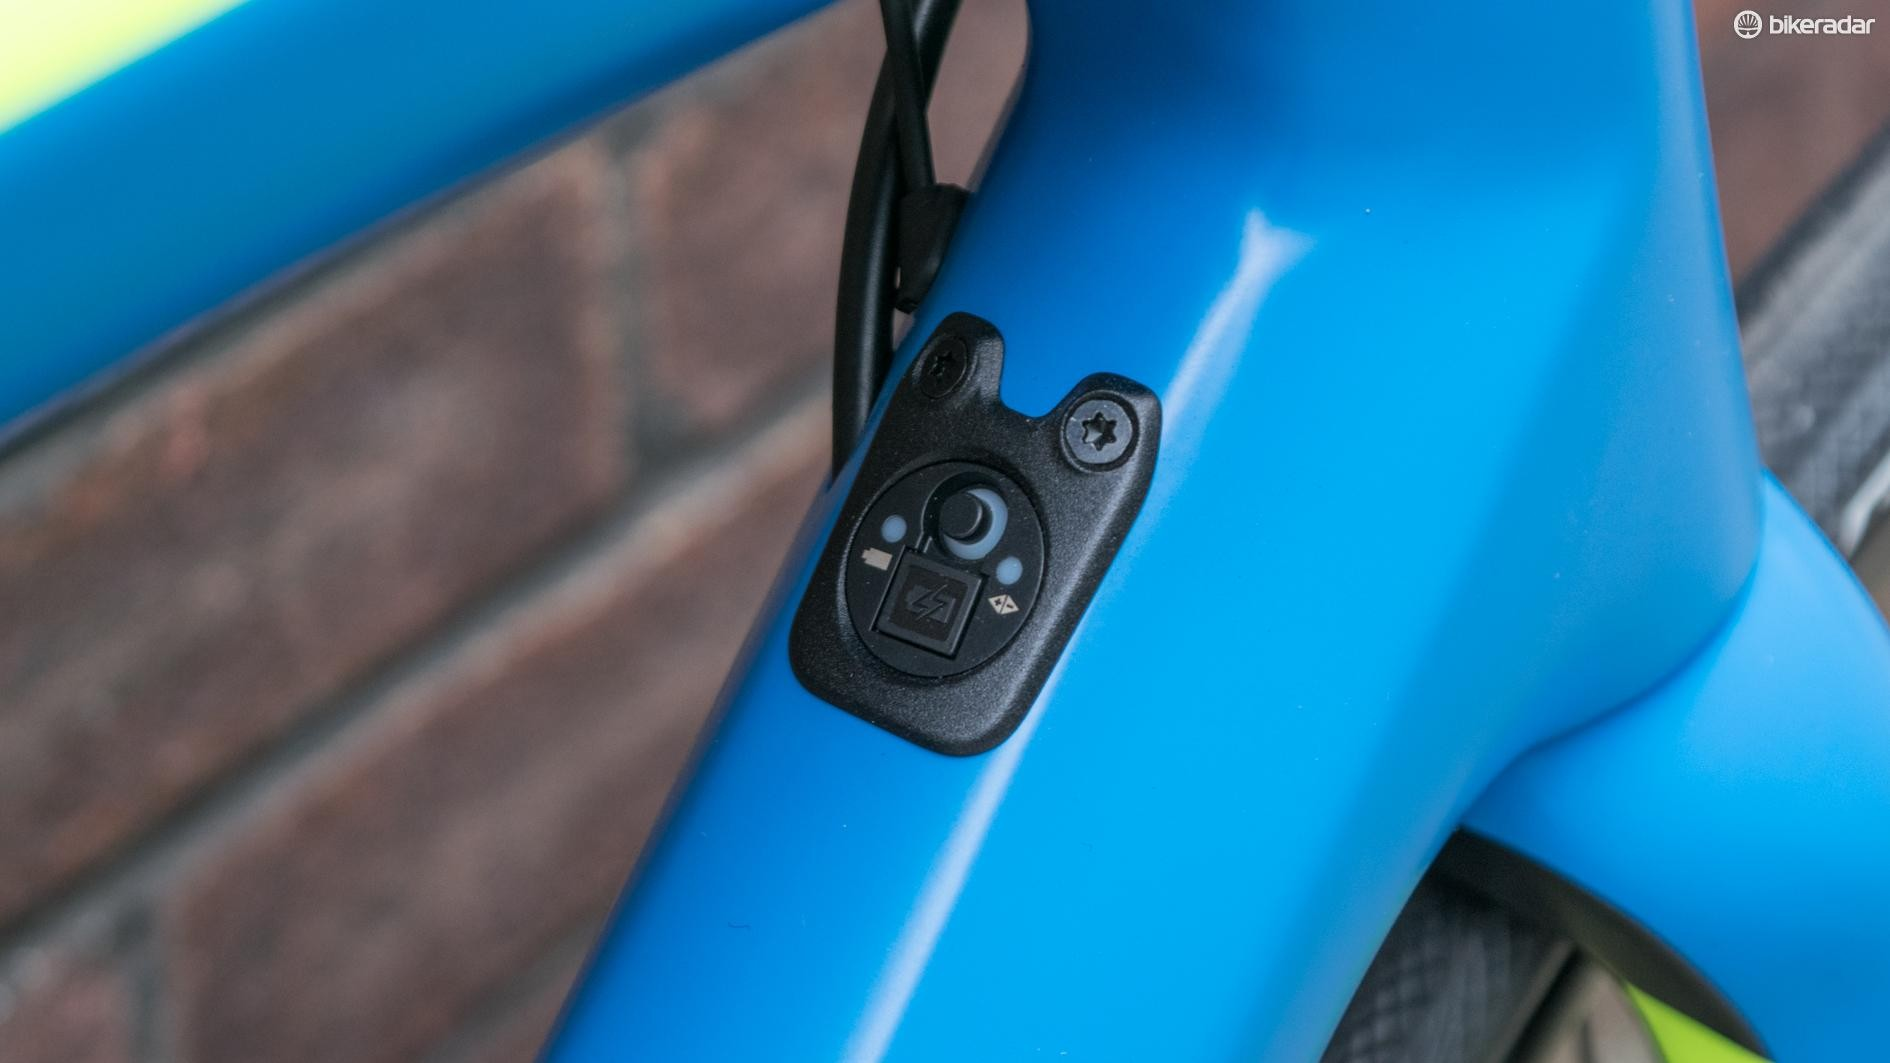 The Di2 charge port on the down tube is a nice touch